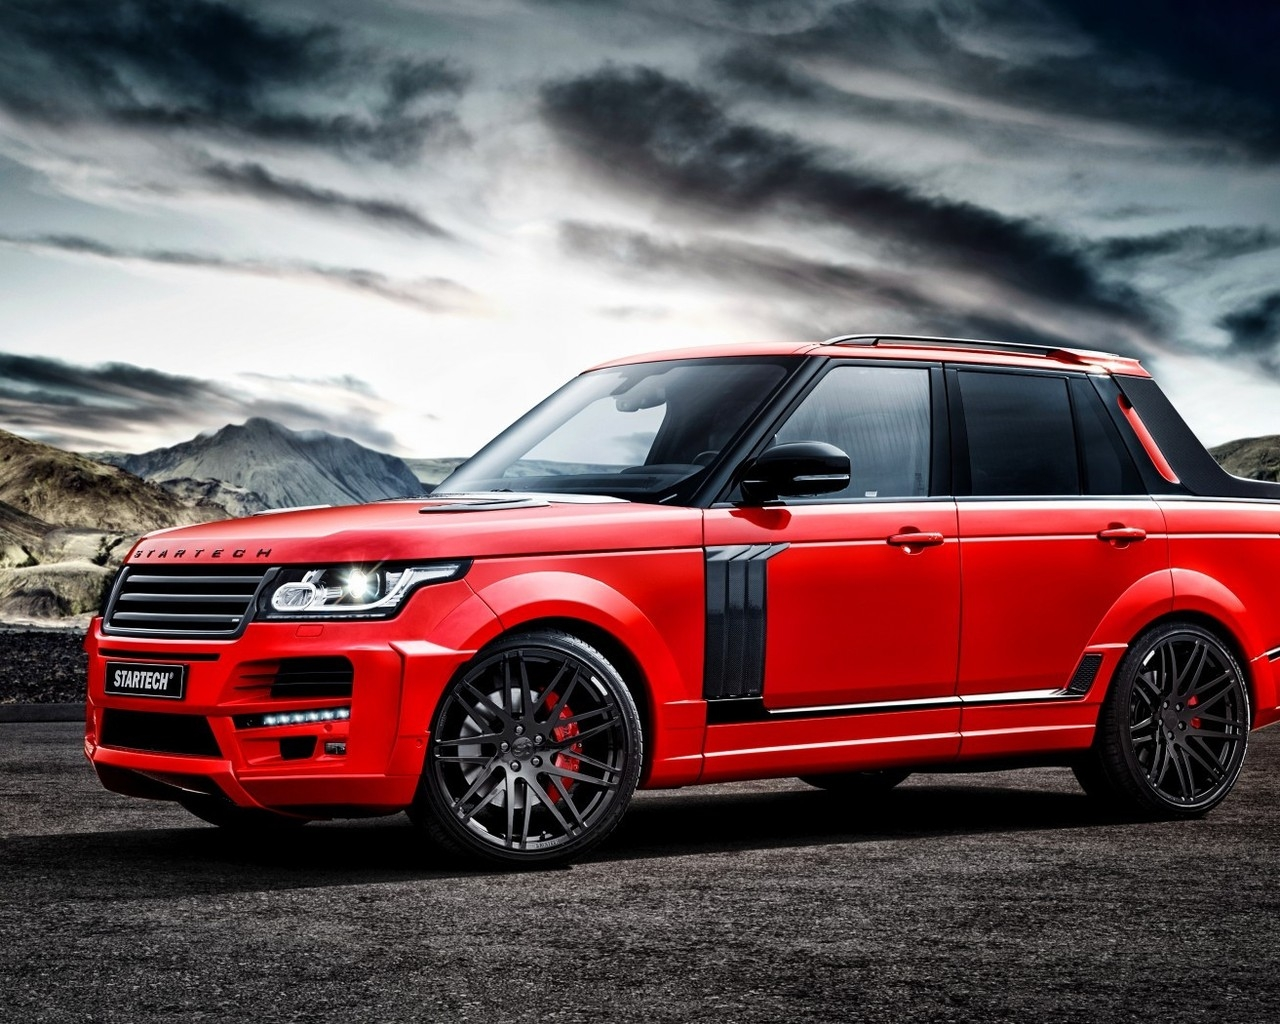 Red Startech Range Rover Pickup for 1280 x 1024 resolution